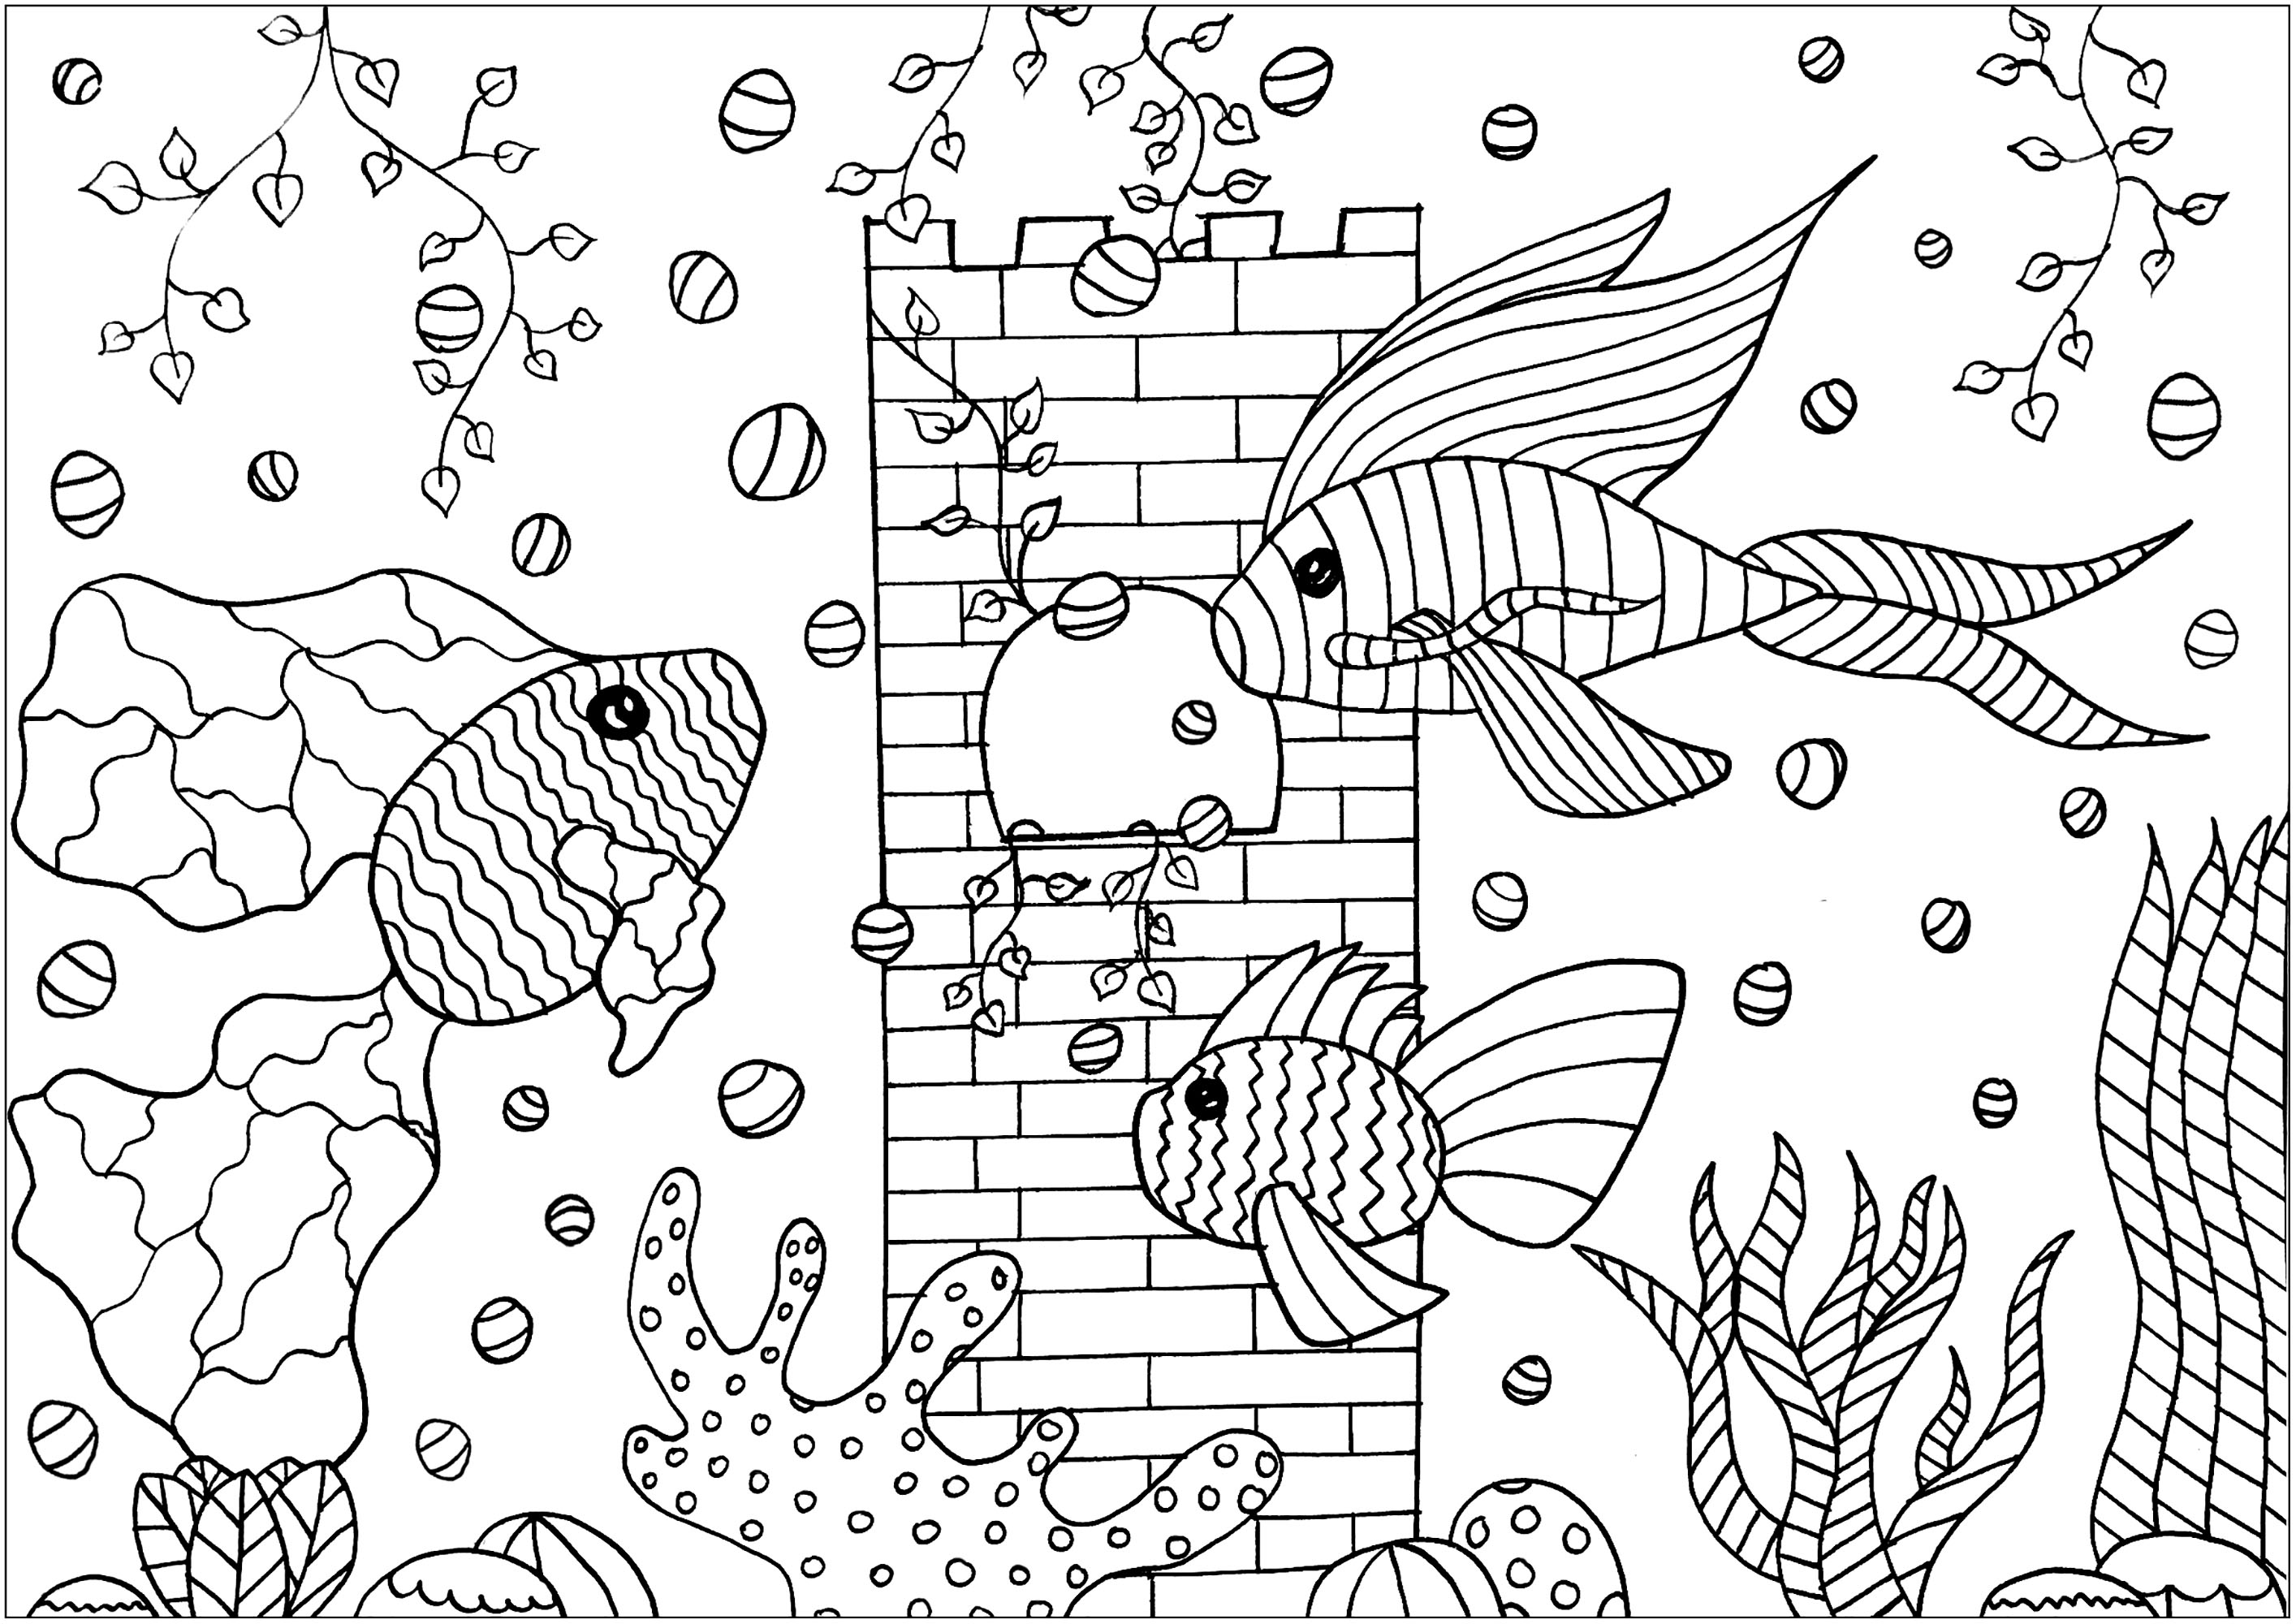 Three beautiful fishes with fins full of patterns, in an aquarium with a beautiful castle and aquatic plants